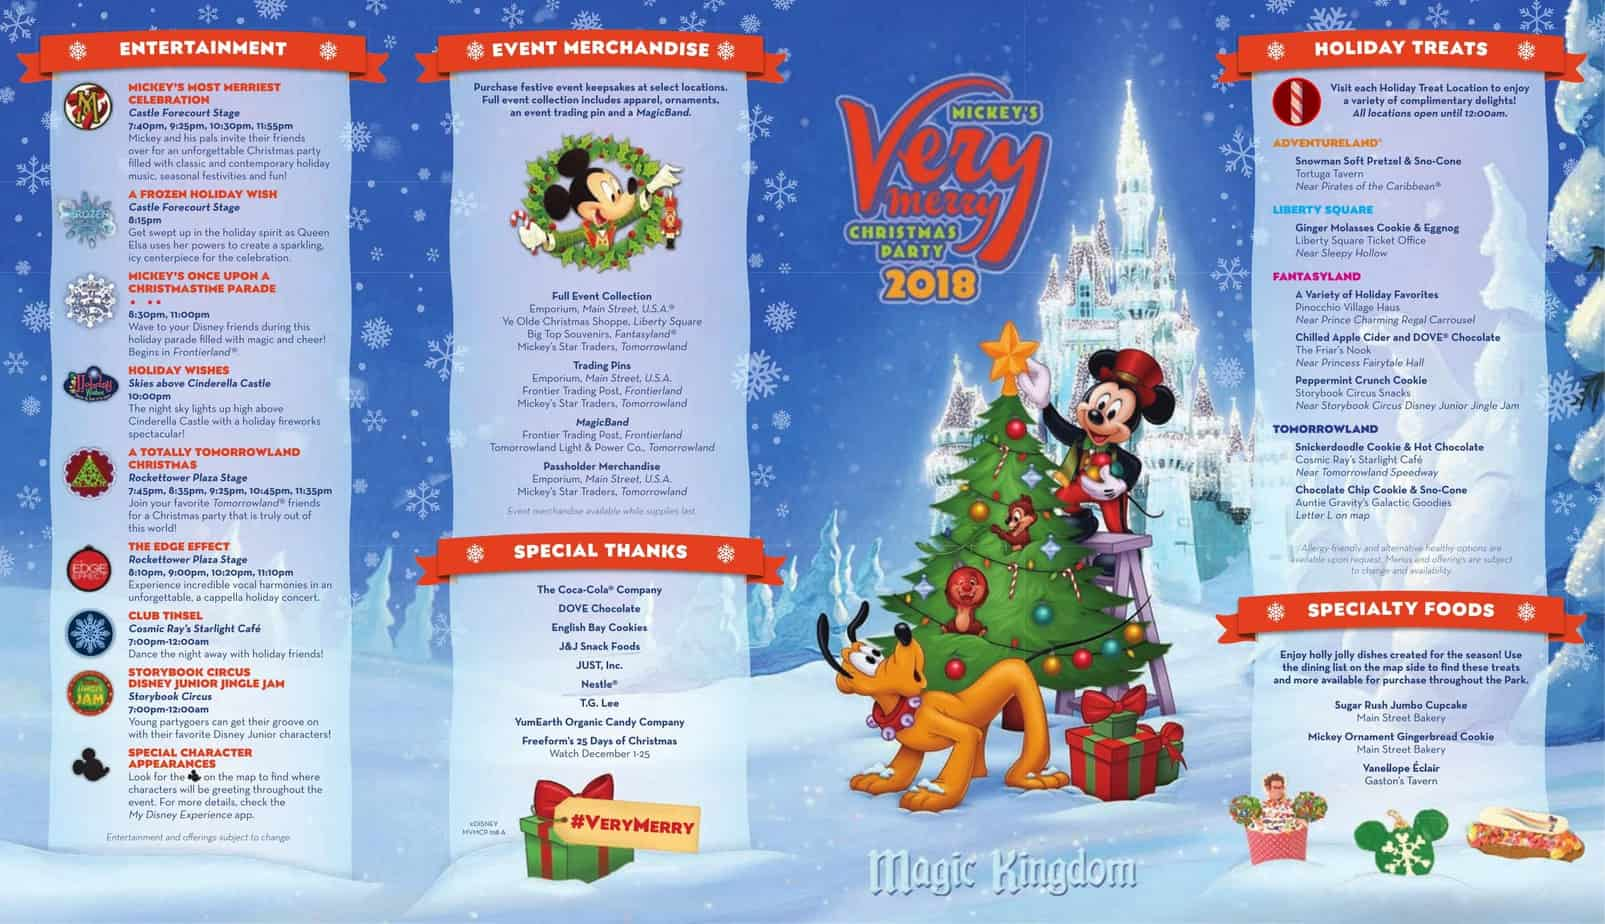 Guide To Mickey S Very Merry Christmas Party 2019 Wdw Vacation Tips